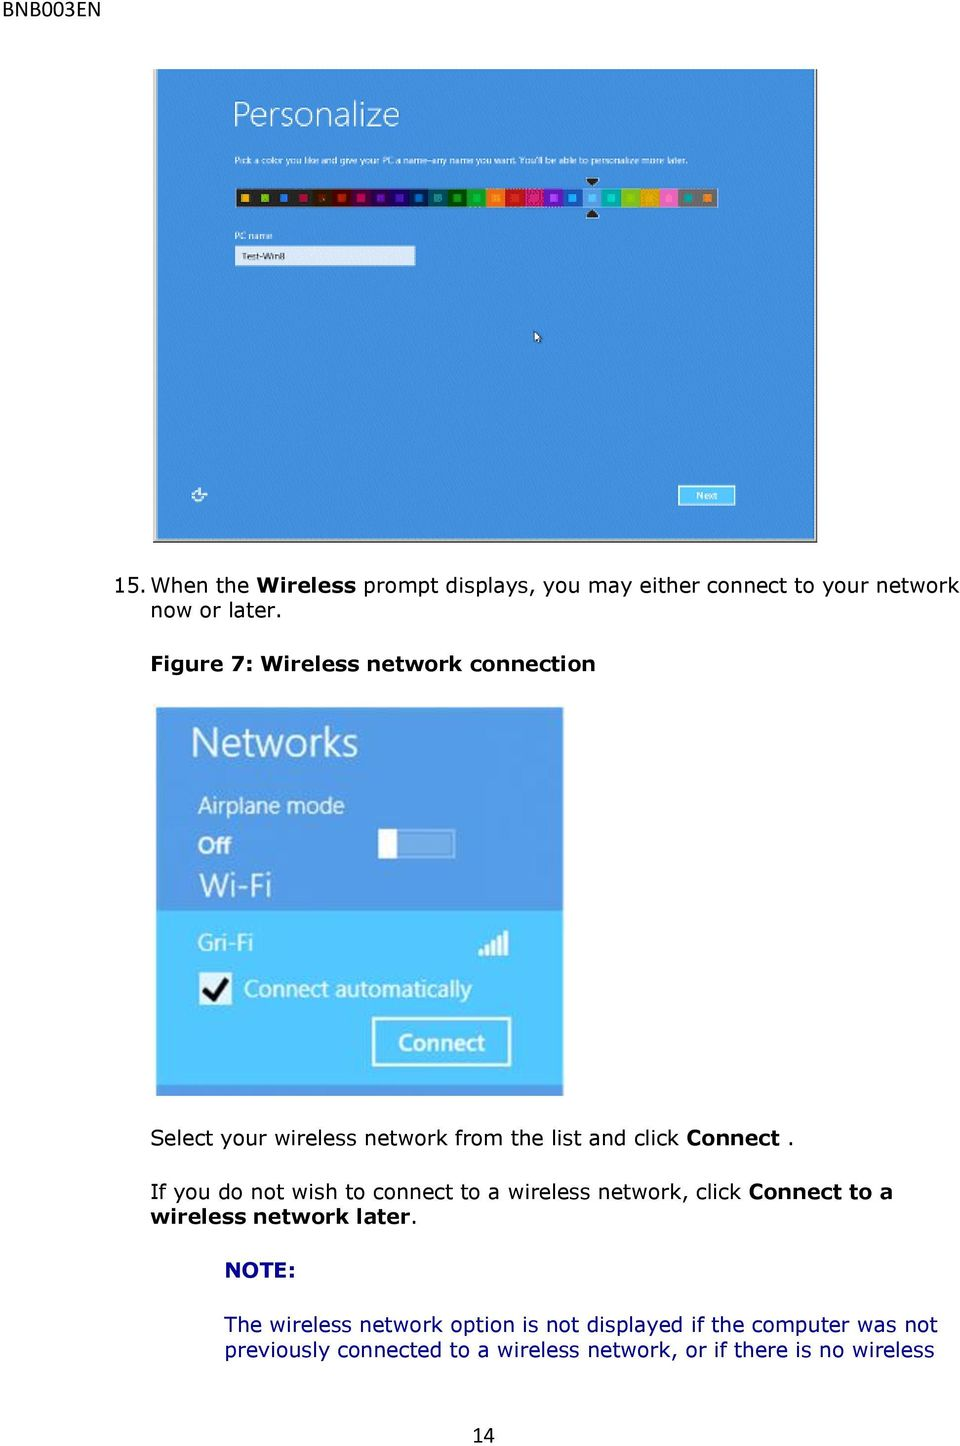 If you do not wish to connect to a wireless network, click Connect to a wireless network later.